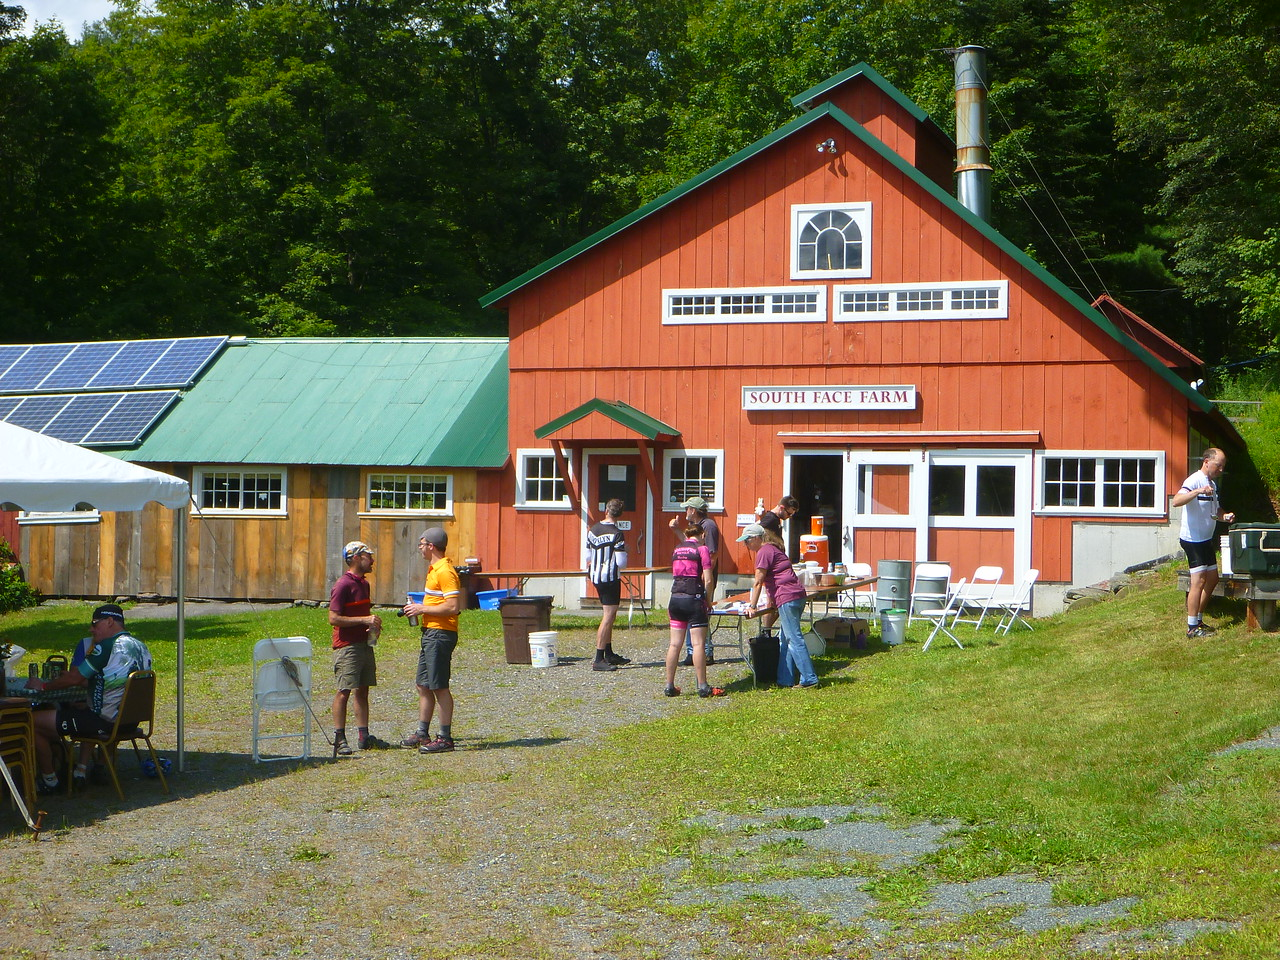 Lunch at South Face Farm